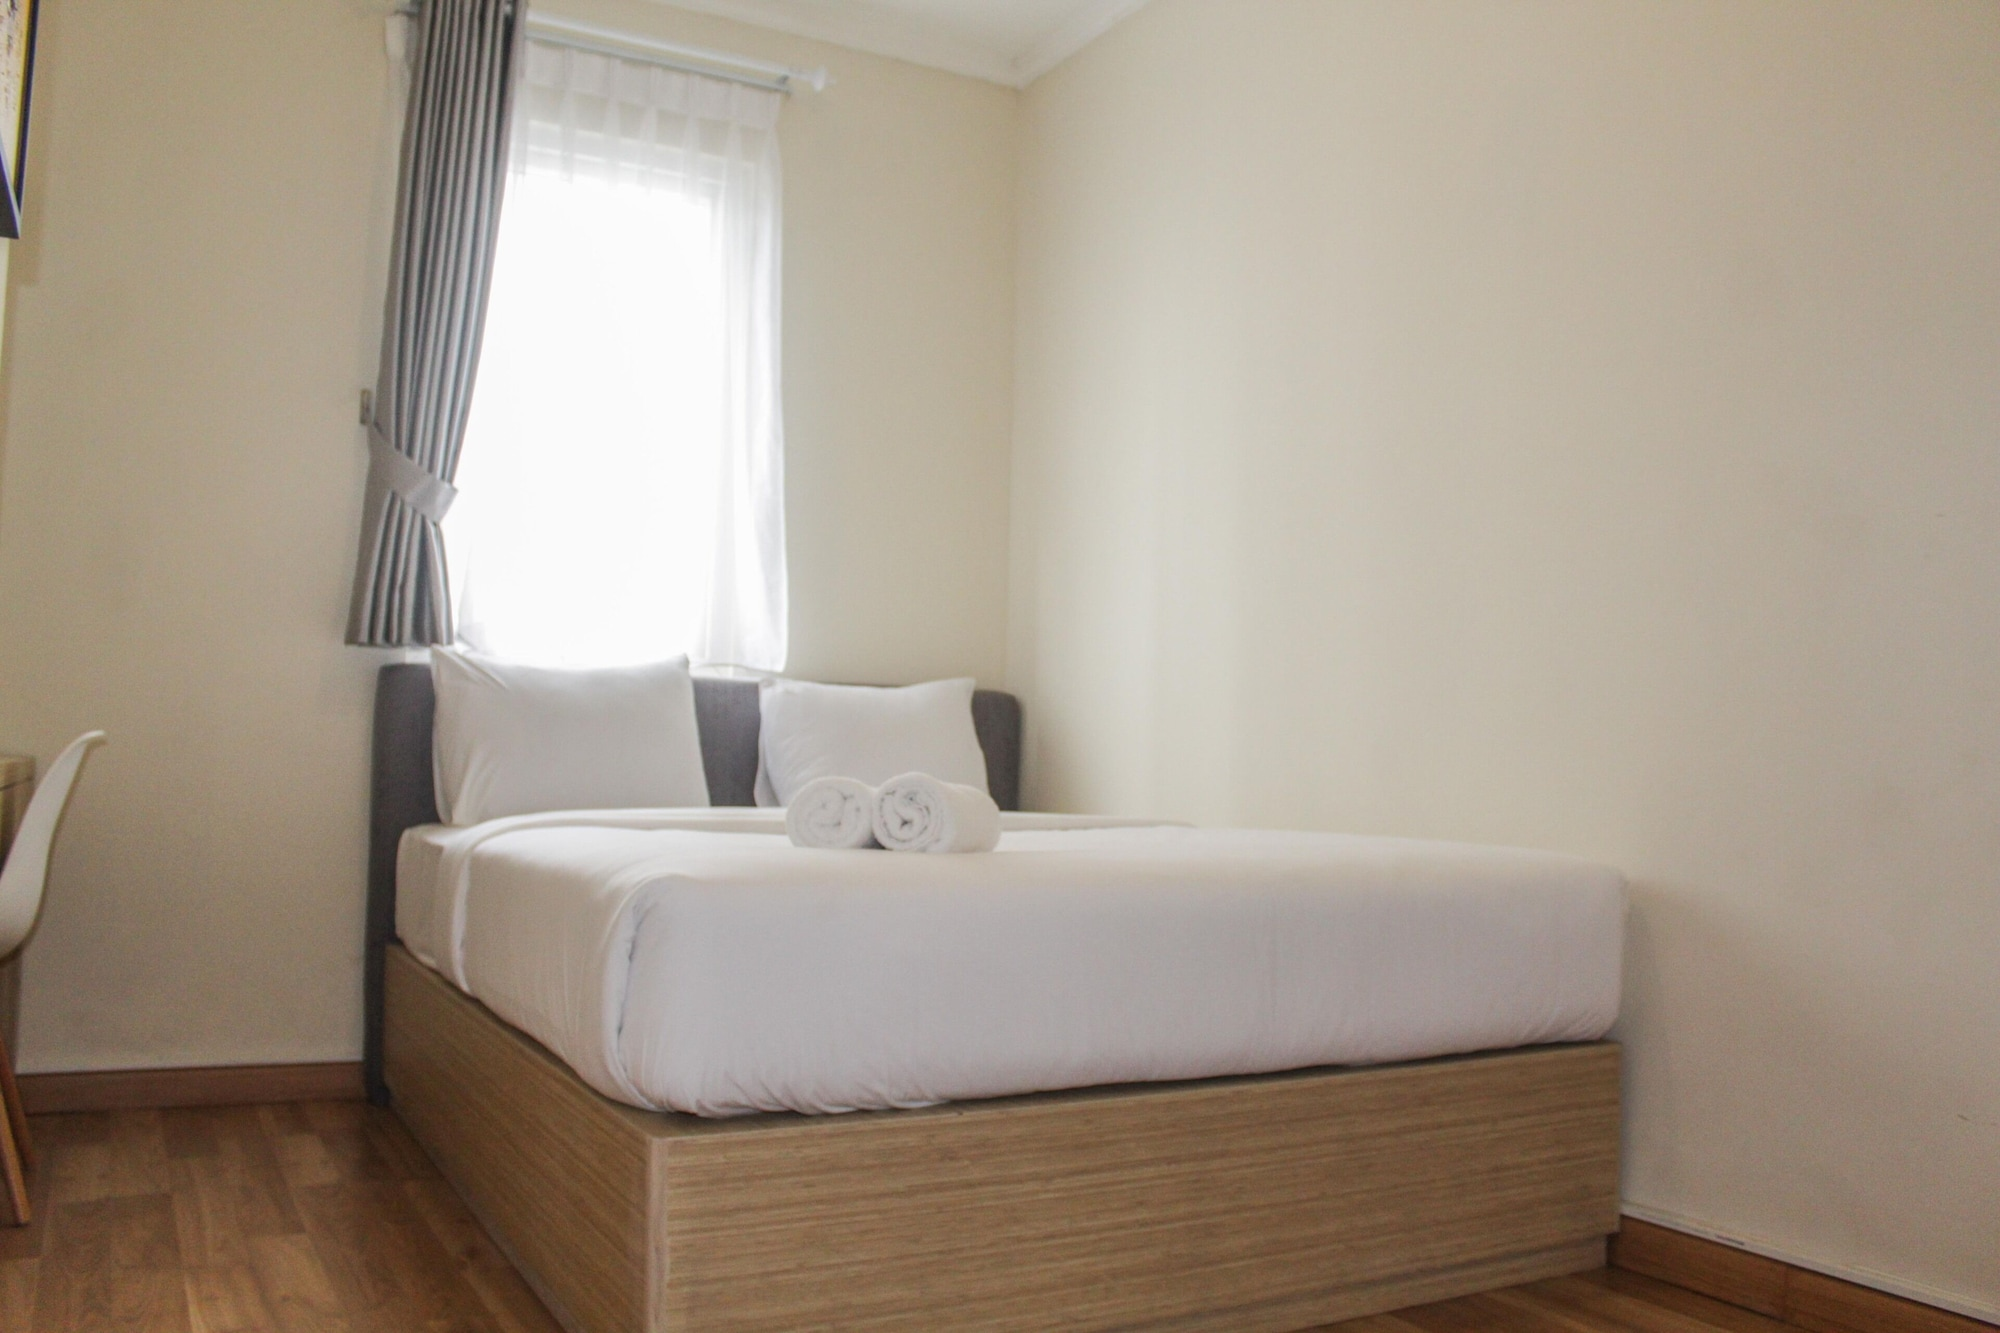 Homey 2BR Apartment at Grand Palace Kemayoran, Central Jakarta